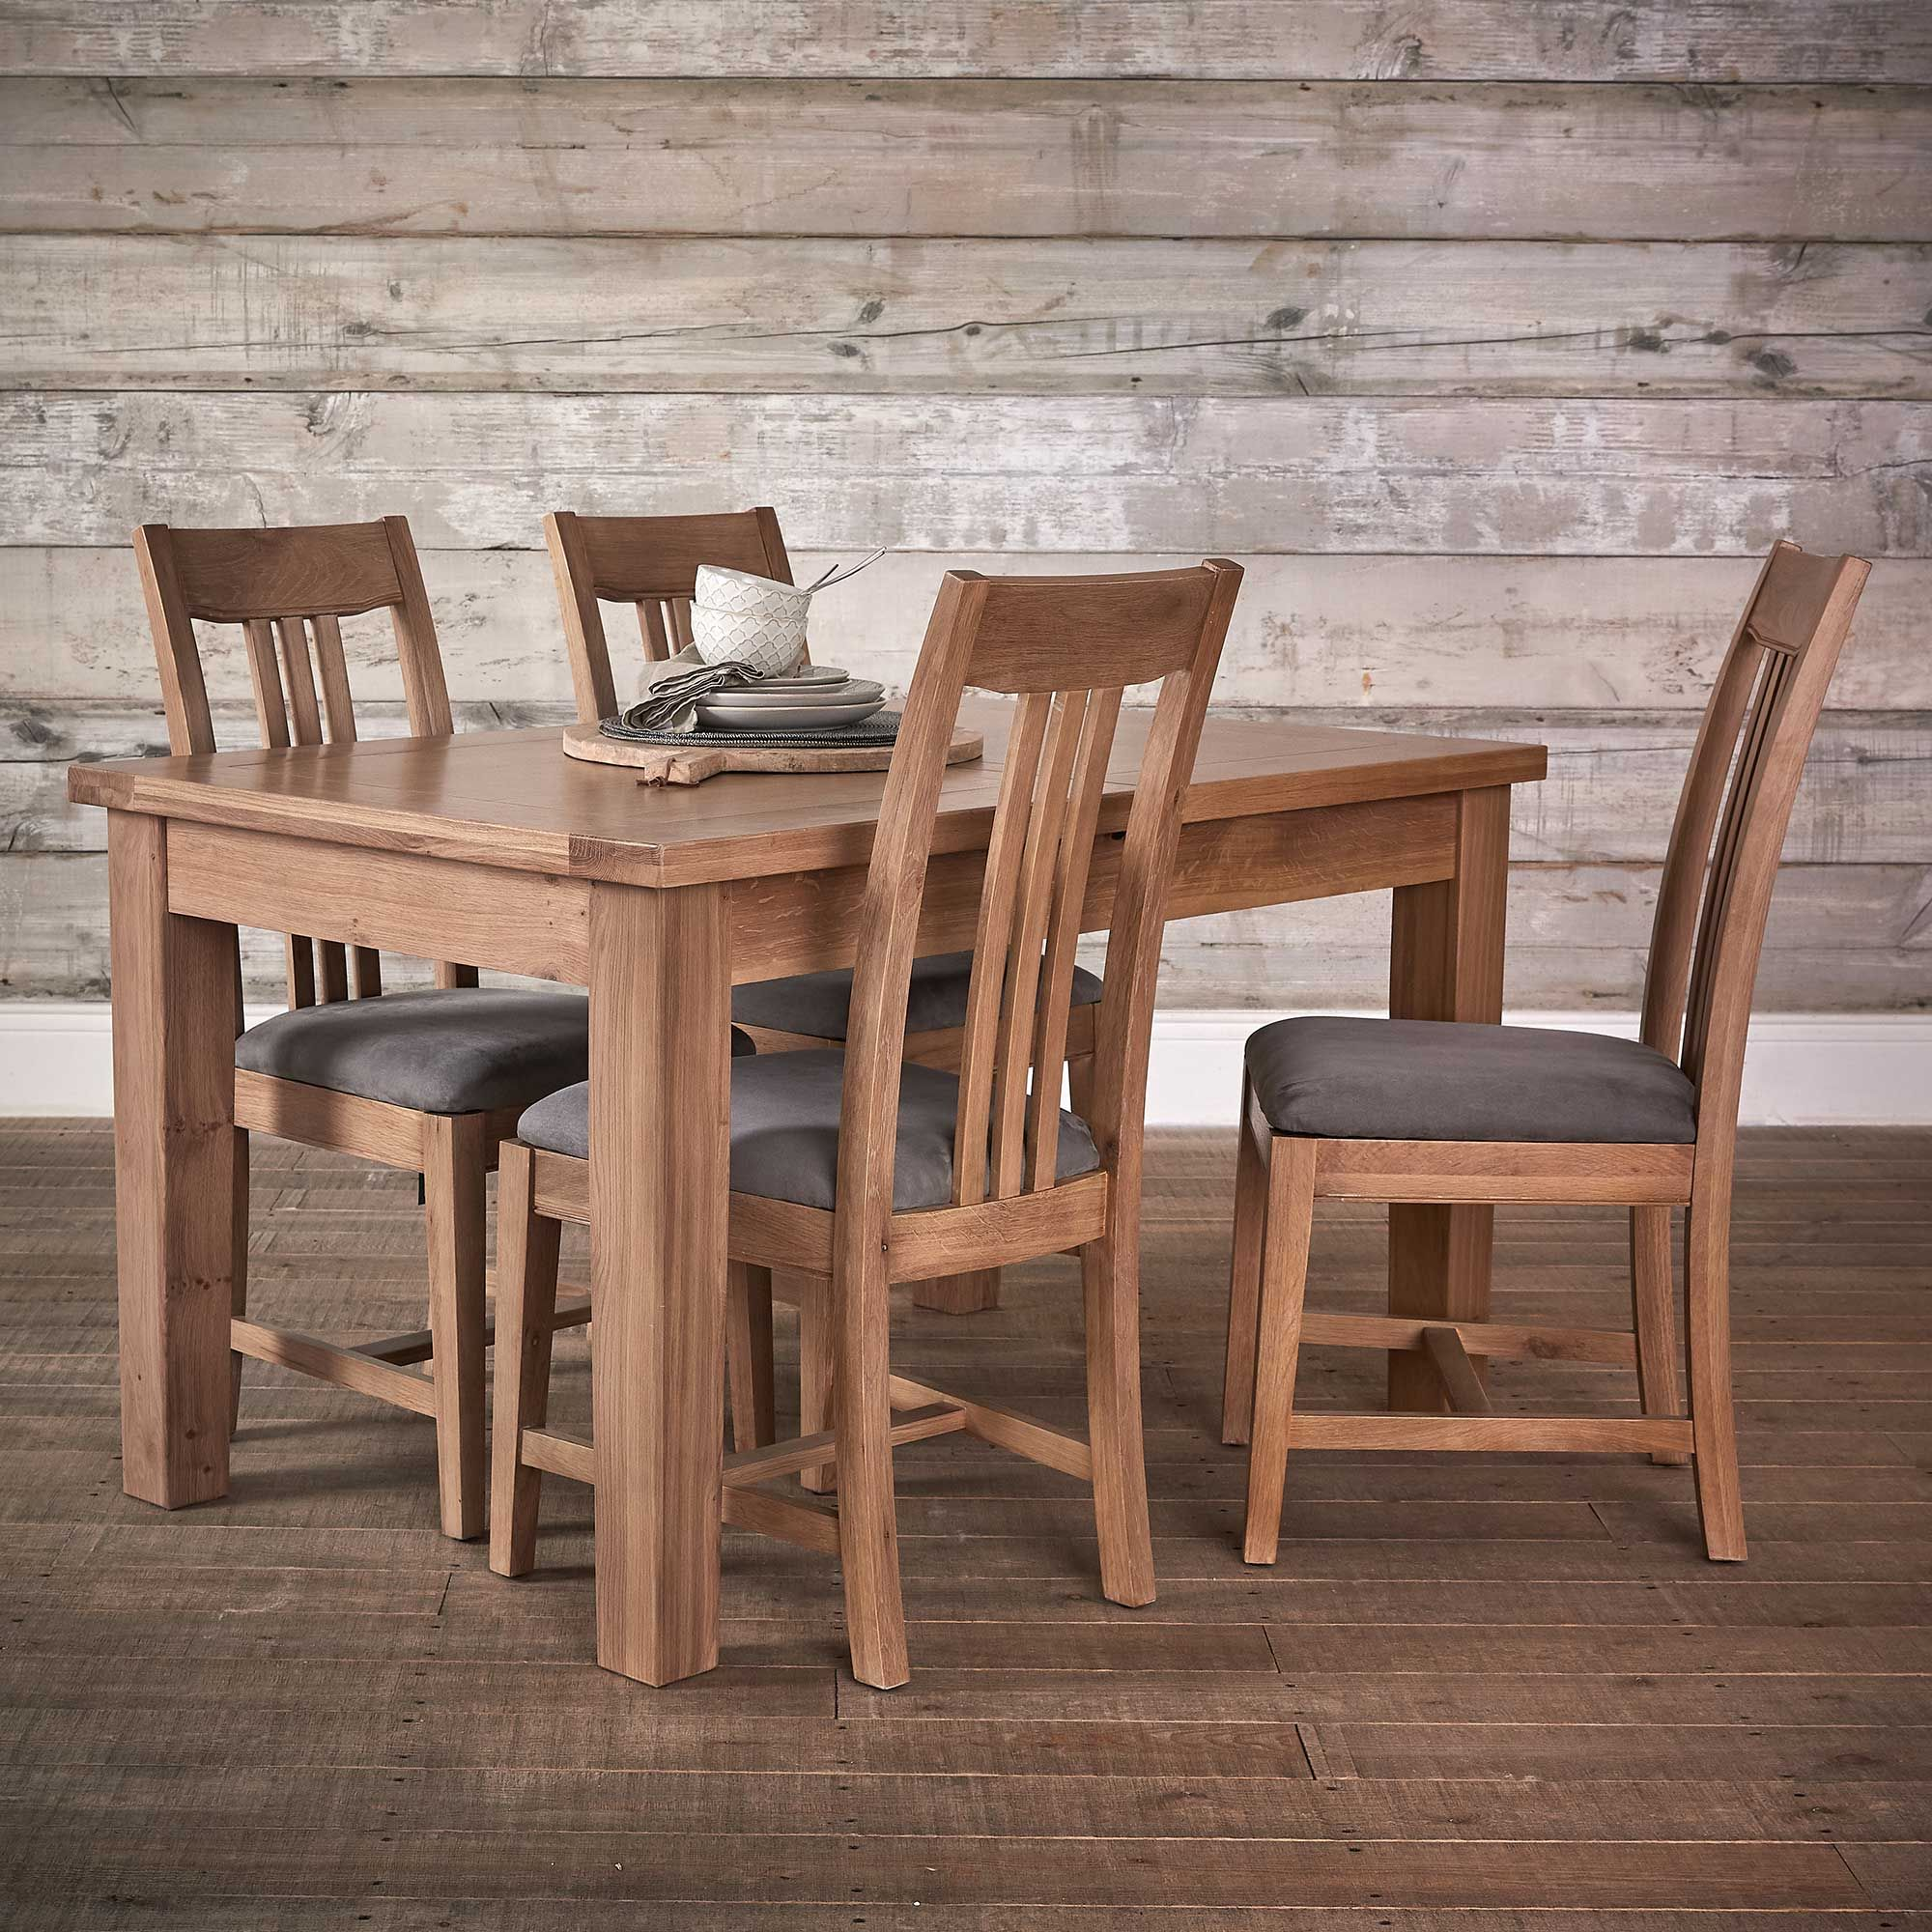 Ripley Large Extending Dining Table and 4 Oak Dining Chairs with Upholstered Seats, Washed Oak and Grey | Occasional Tables | Dining Room